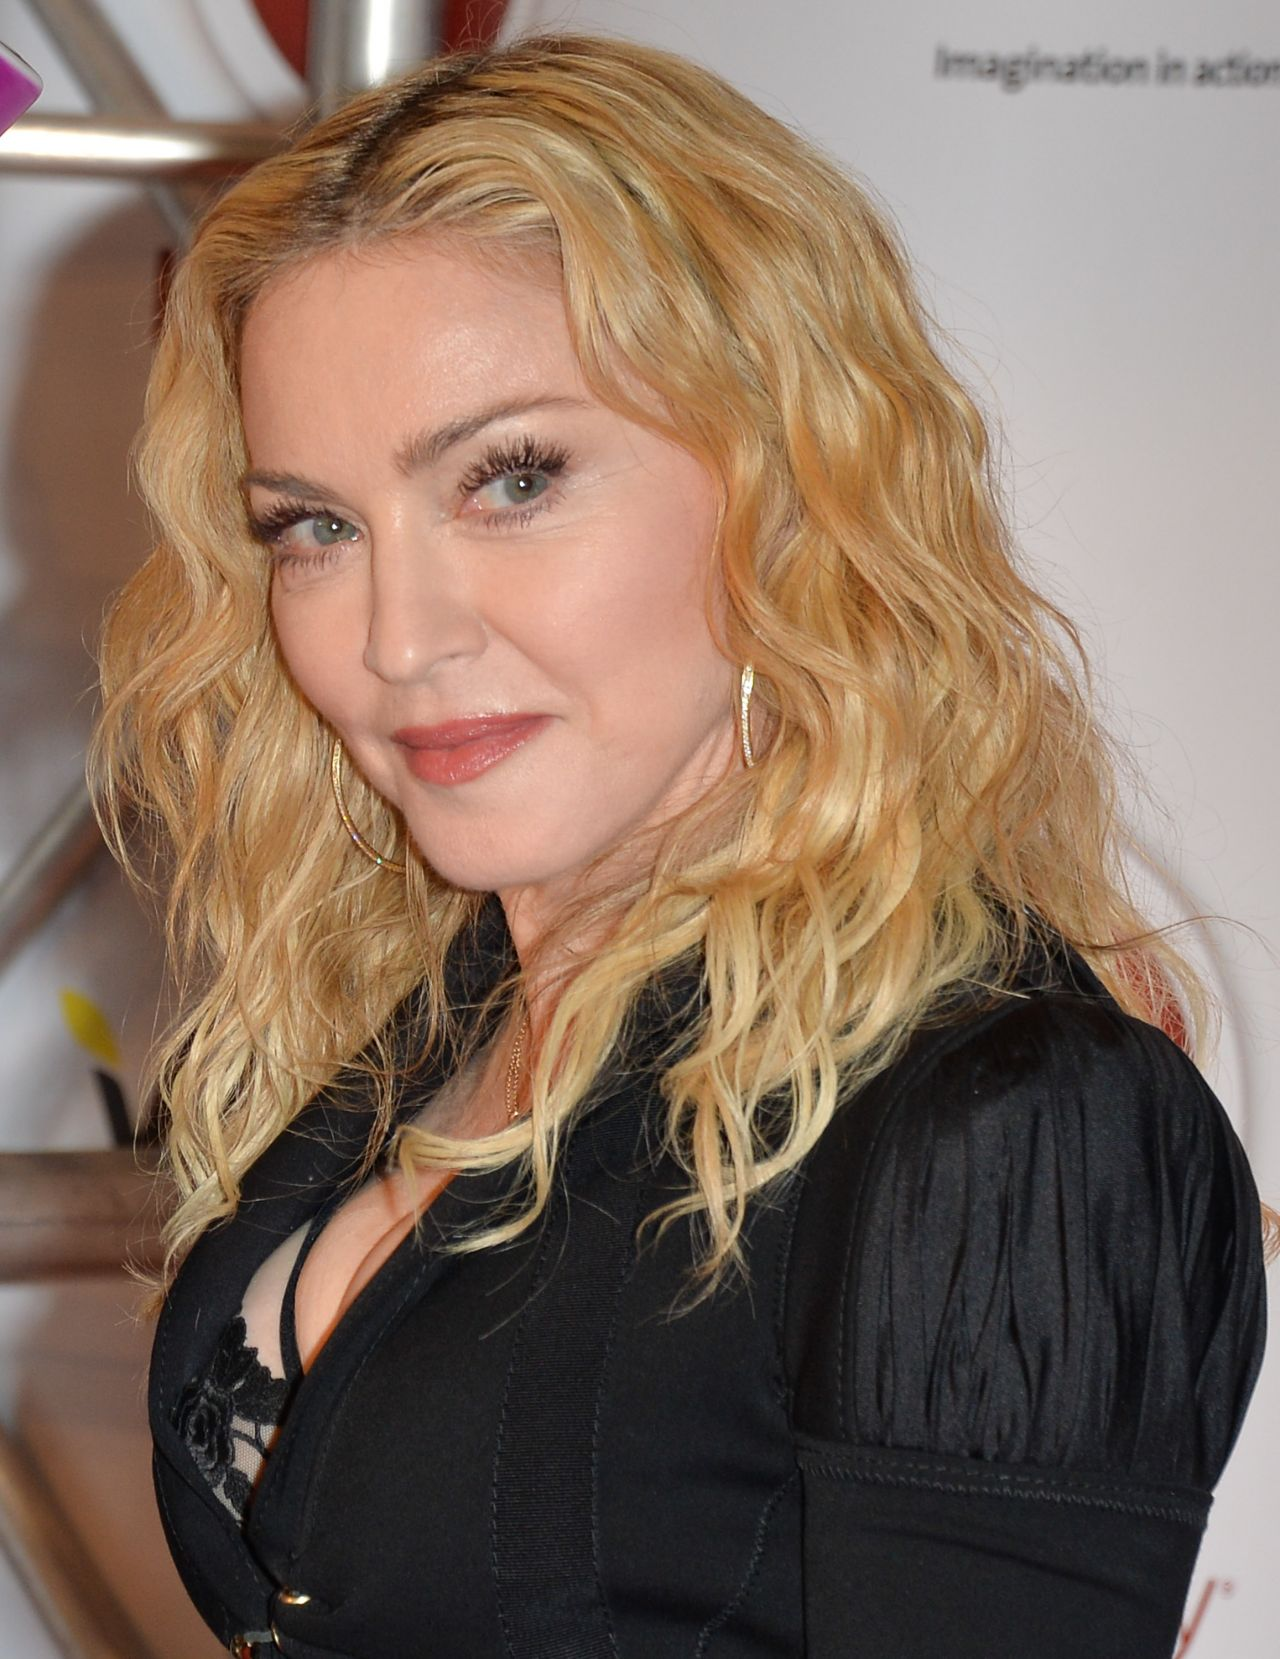 Madonna - Hard Candy Fitness Toronto Grand Opening Celebration in Canada, February 2014